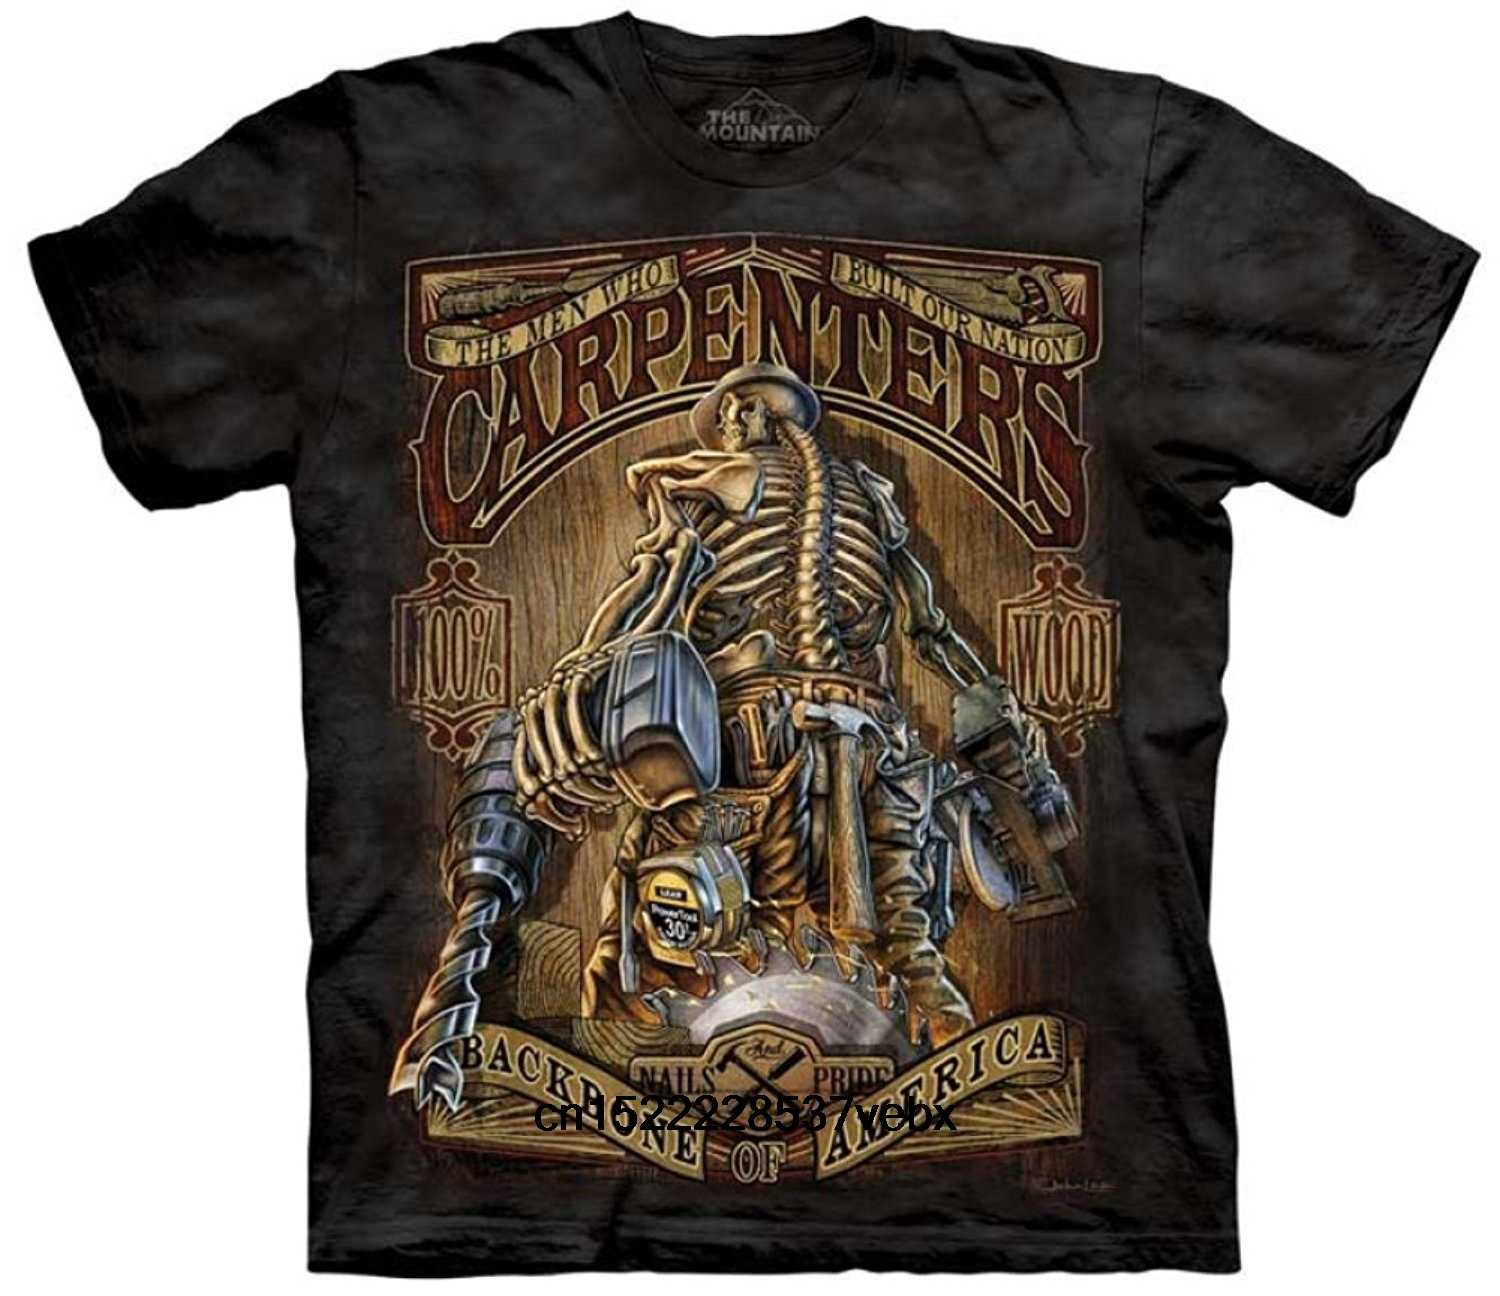 CARPENTERS BACKBONE OF AMERICA ADULT MEN SHORT SLEEVE T-SHIRT BALCK